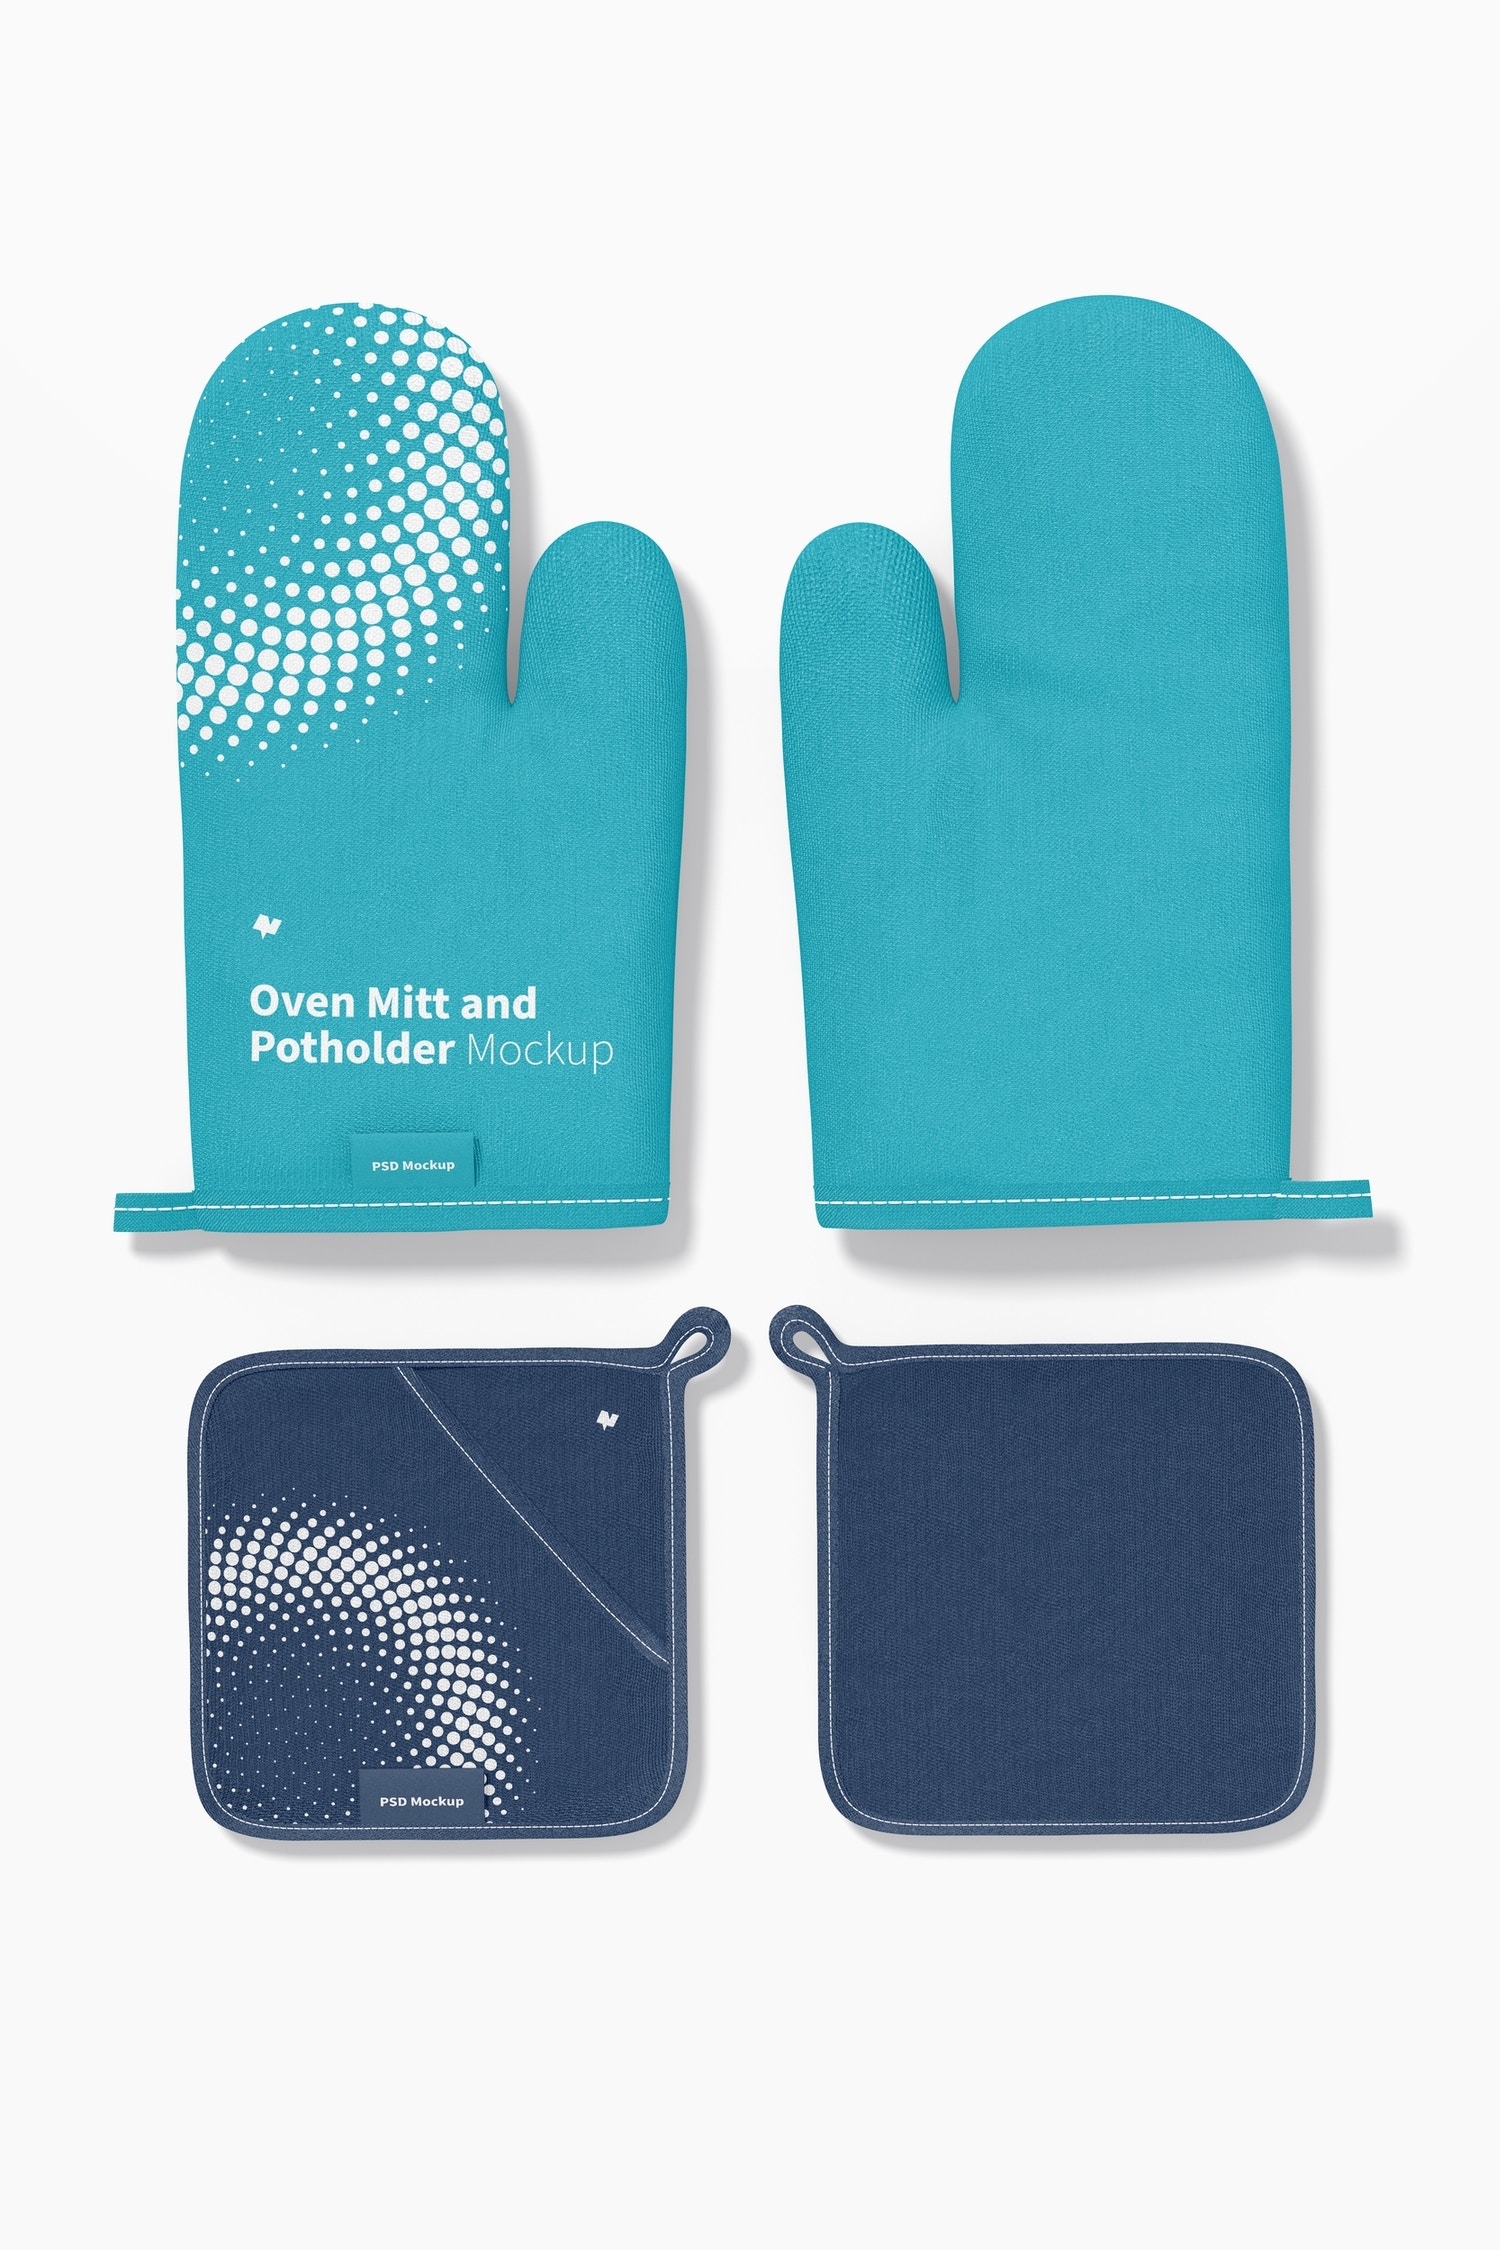 Oven Mitts and Potholders Mockup, Top View